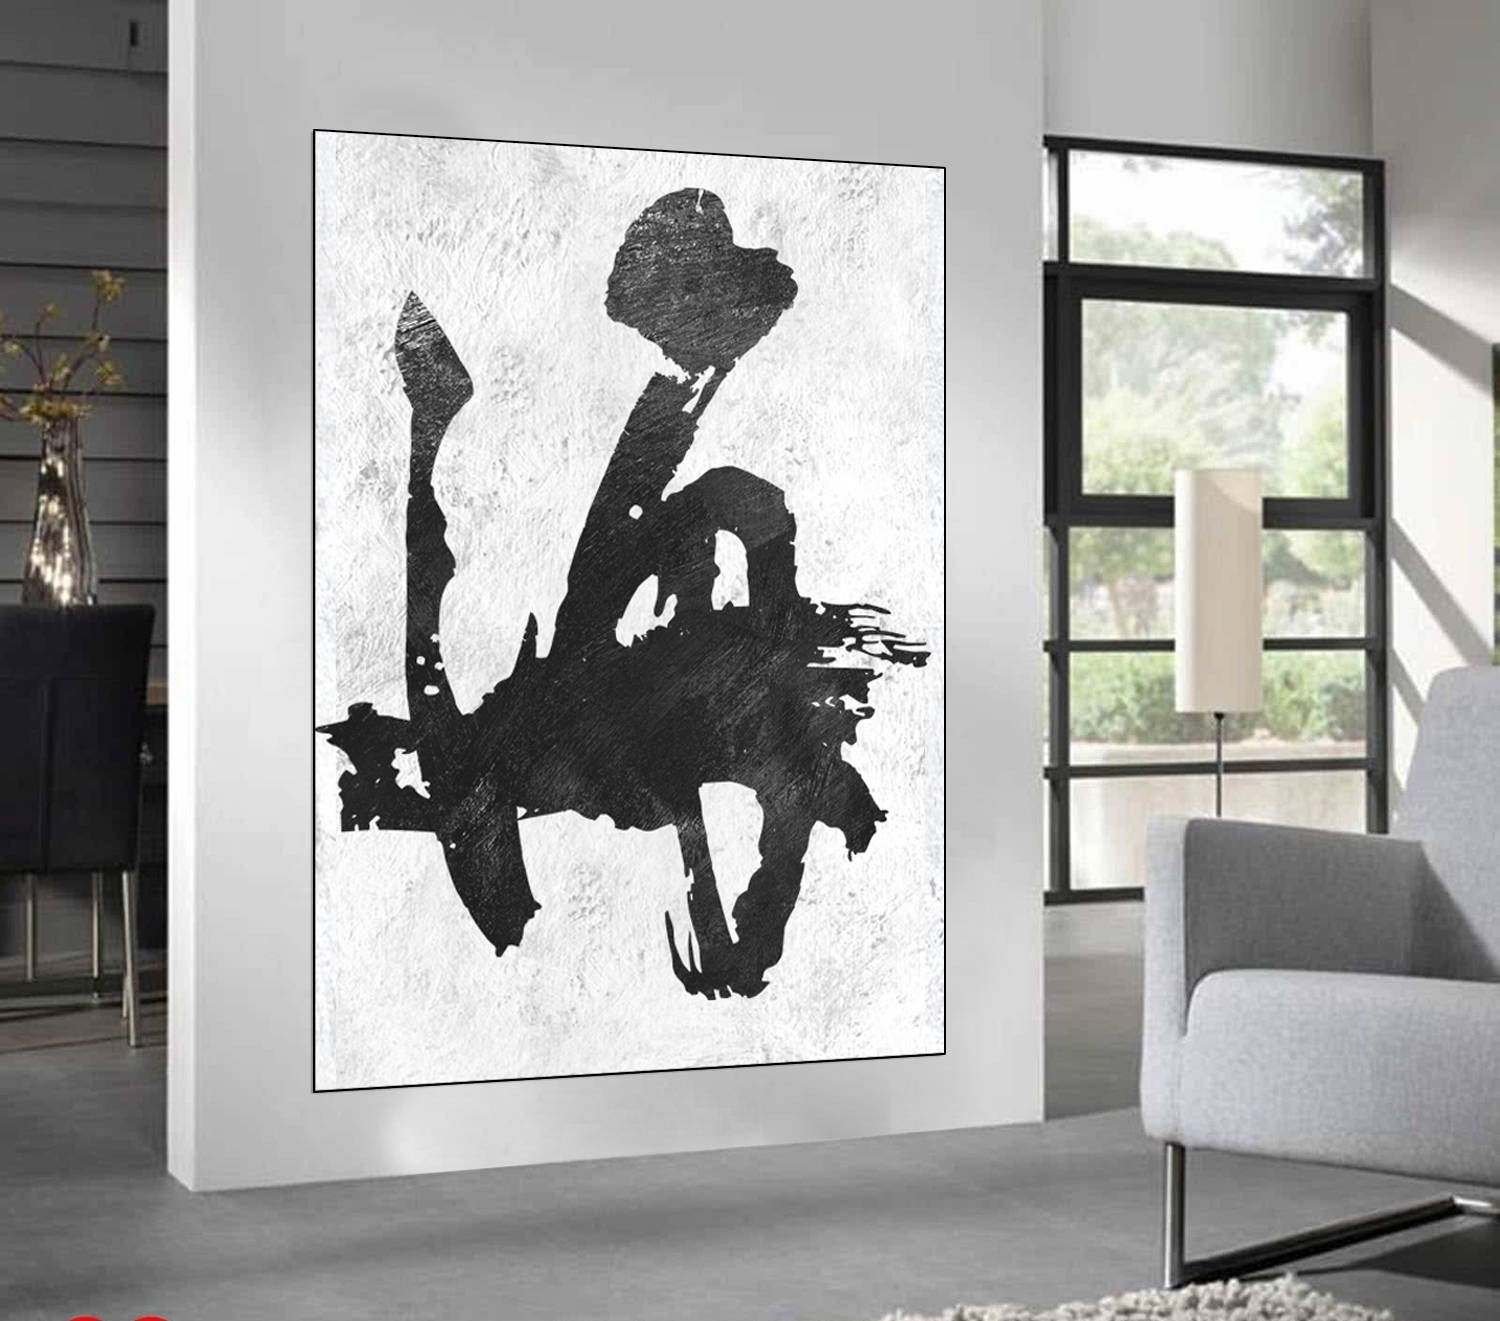 Black And White Abstract Wall Art | World Of Example Within 2017 West Elm Abstract Wall Art (View 7 of 20)